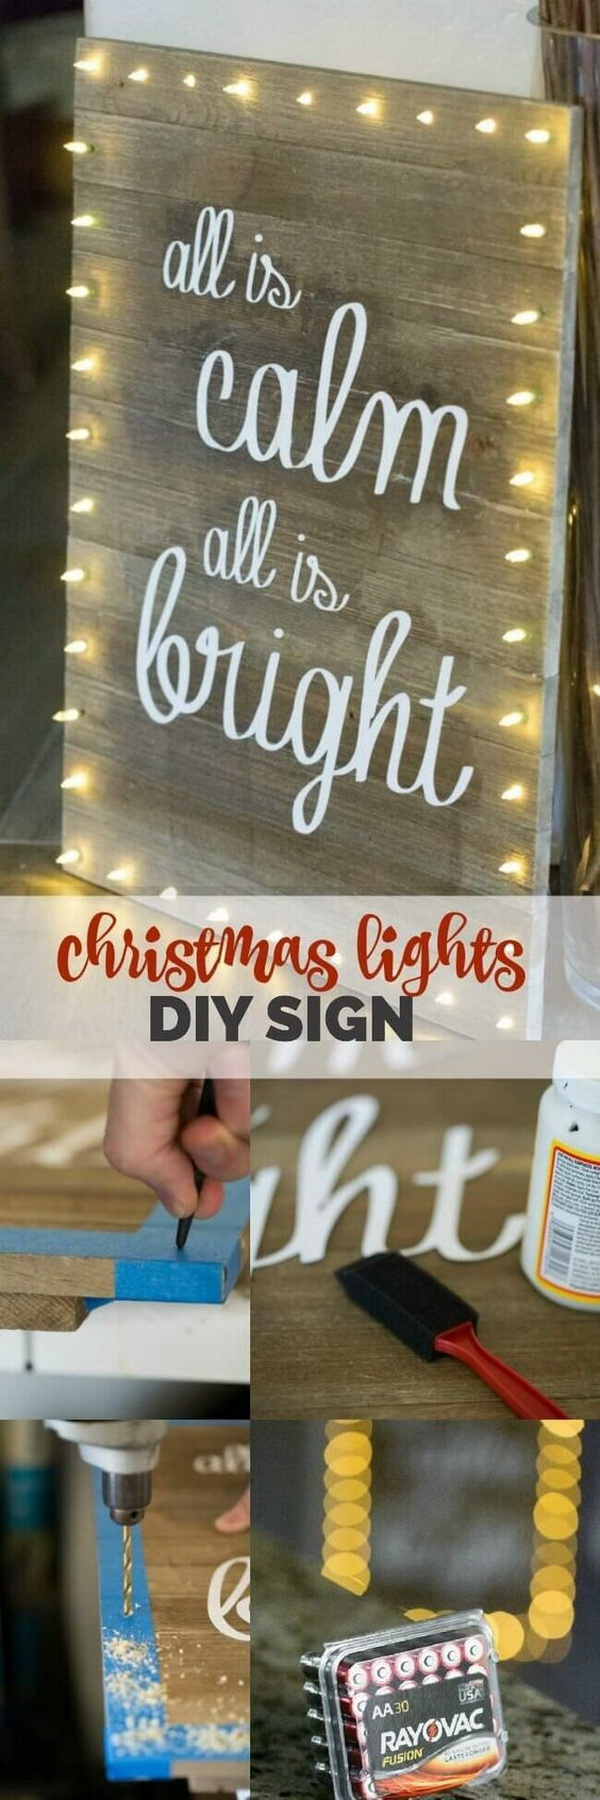 Christmas Lights DIY Board Sign. This DIY board sign with Christmas lights will be a great addition to your rustic farmhouse decoration during this Christmas season!